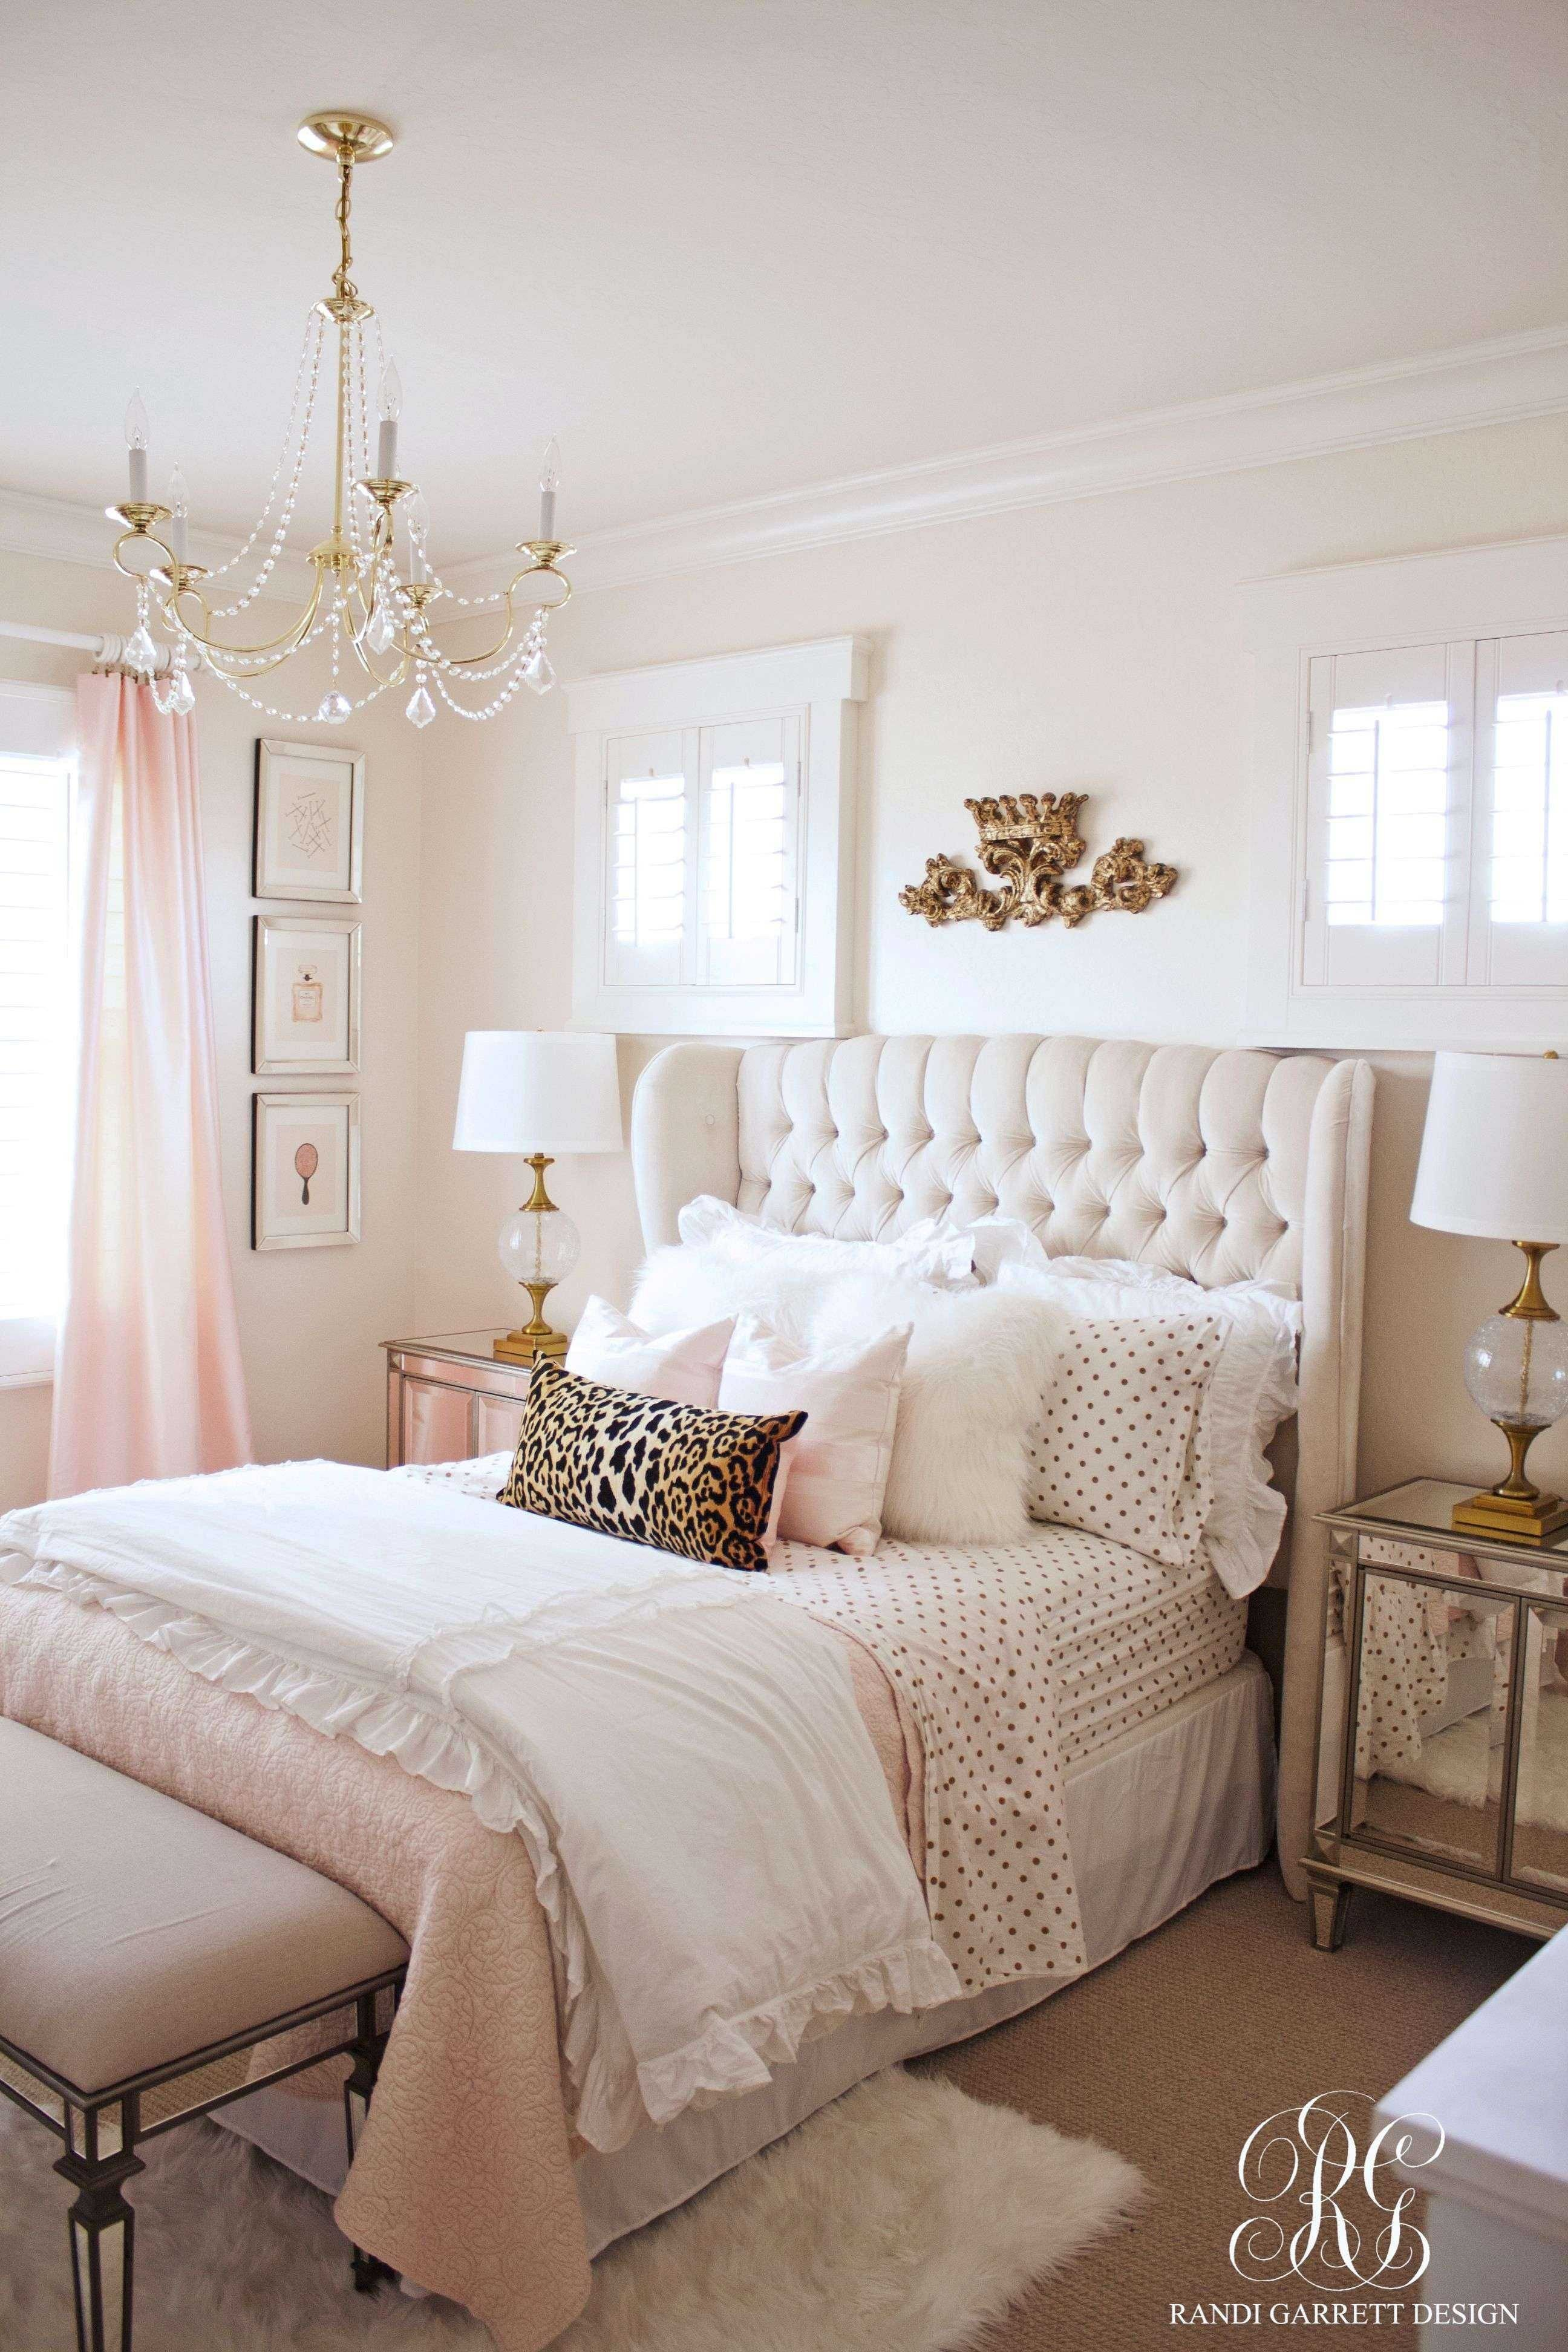 Pink and Gold Bedroom Ideas Luxury Country Chic Rustic Glam Bedroom Awesome Country Chic